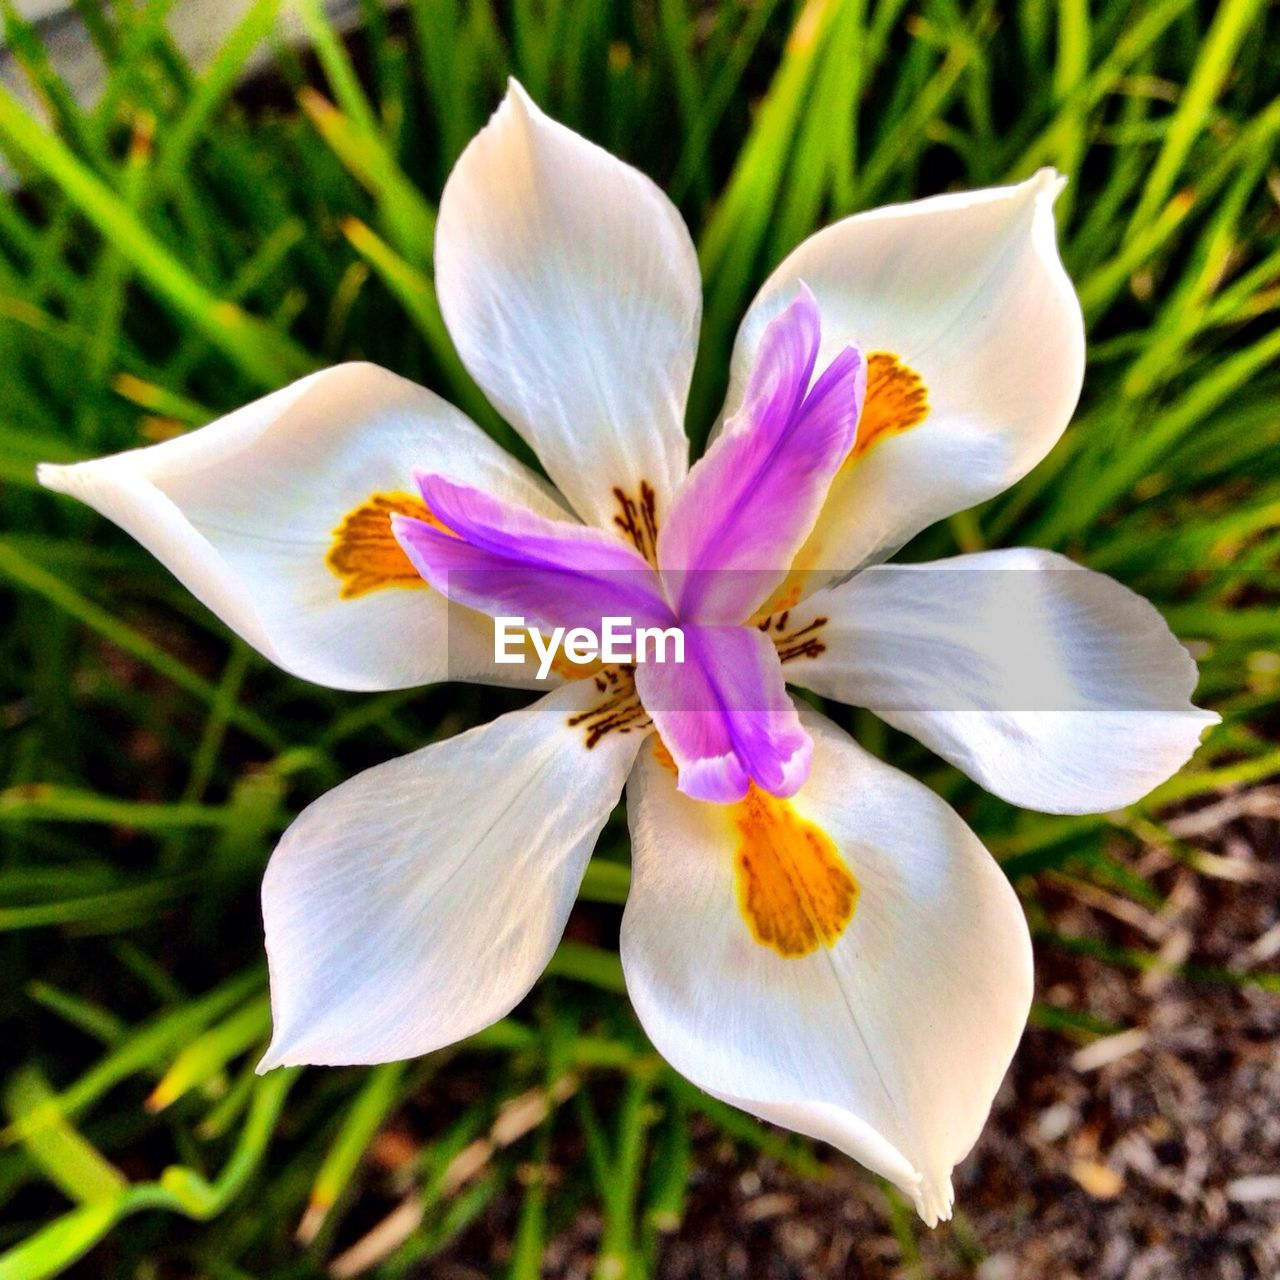 flower, petal, flower head, fragility, beauty in nature, growth, freshness, nature, plant, no people, close-up, blooming, day, outdoors, crocus